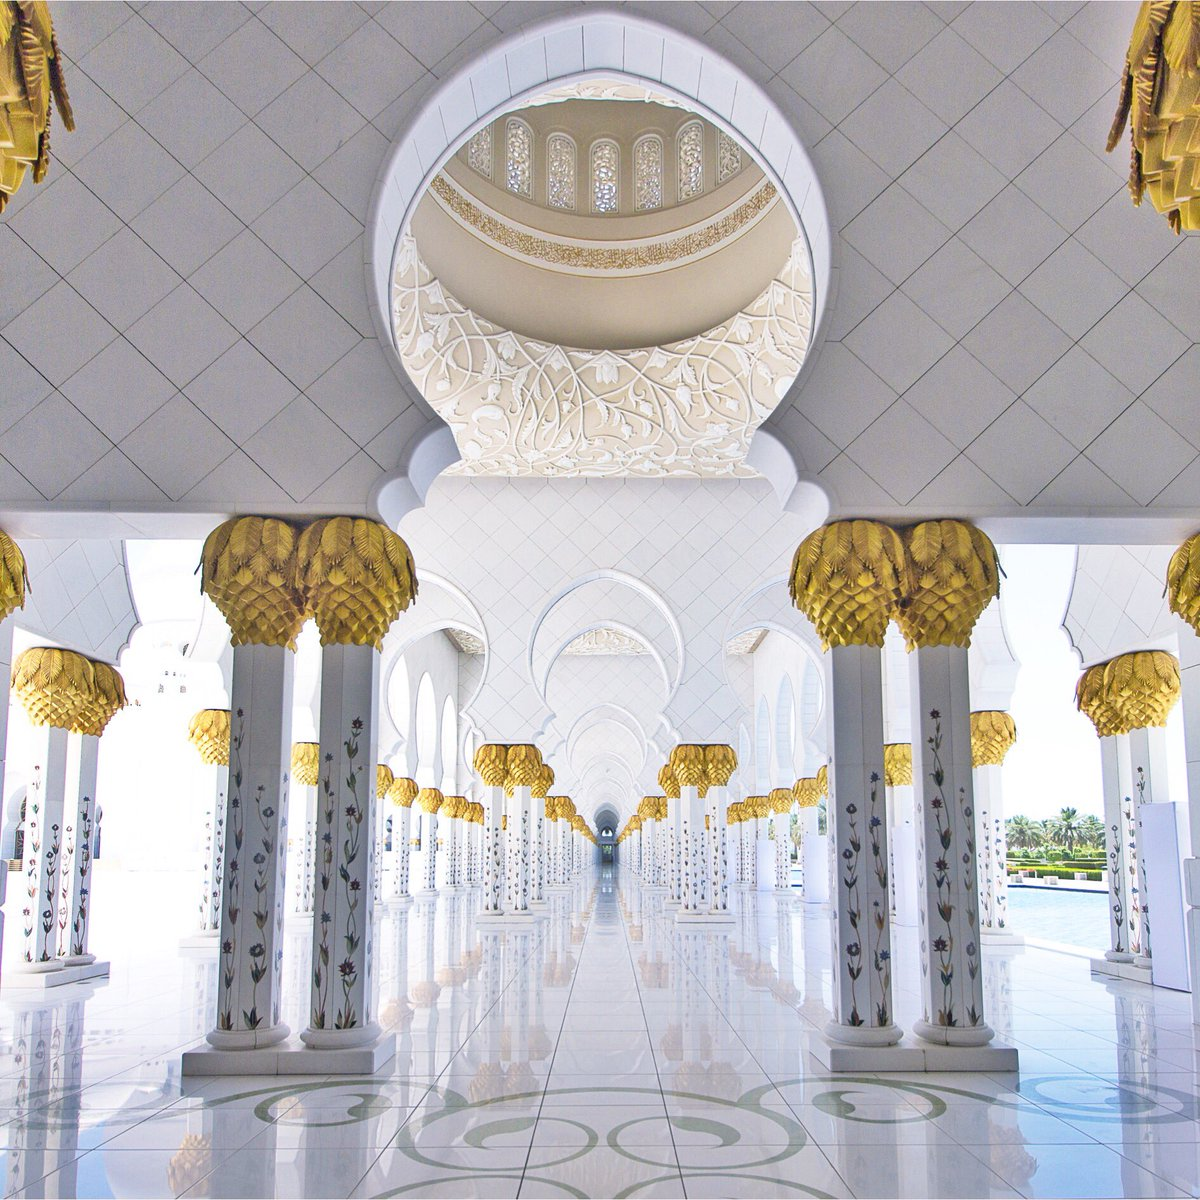 The impressive Sheik Zayed Grand Mosque in Abu Dhabi  #travel #photography #abudhabi https://t.co/9Xduz3r9Vb